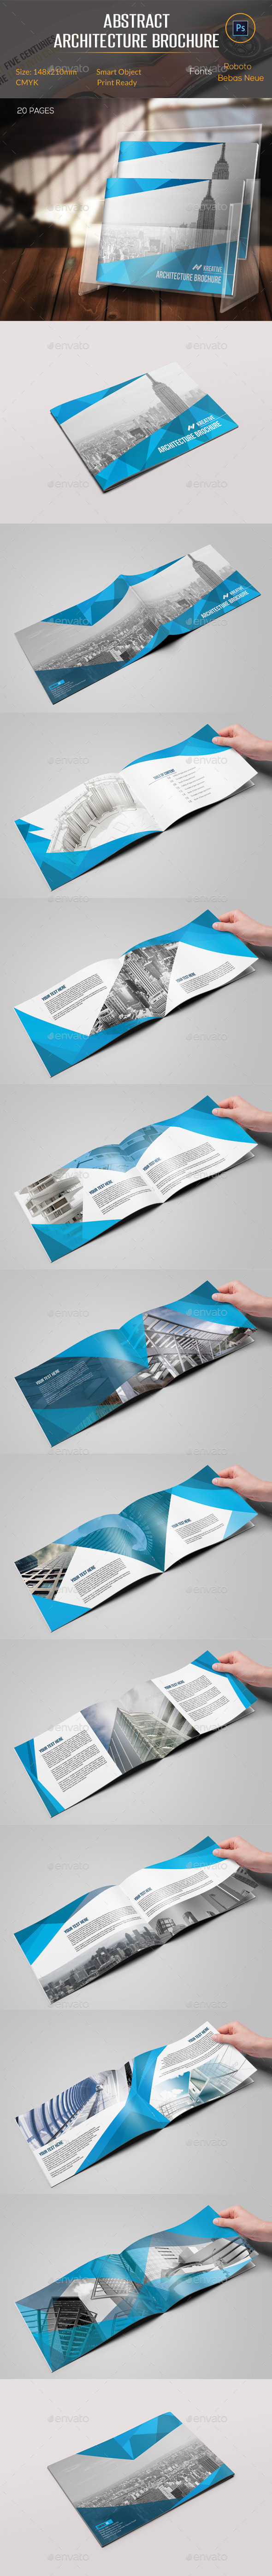 GraphicRiver Abstract Architecture Brochure 11175213